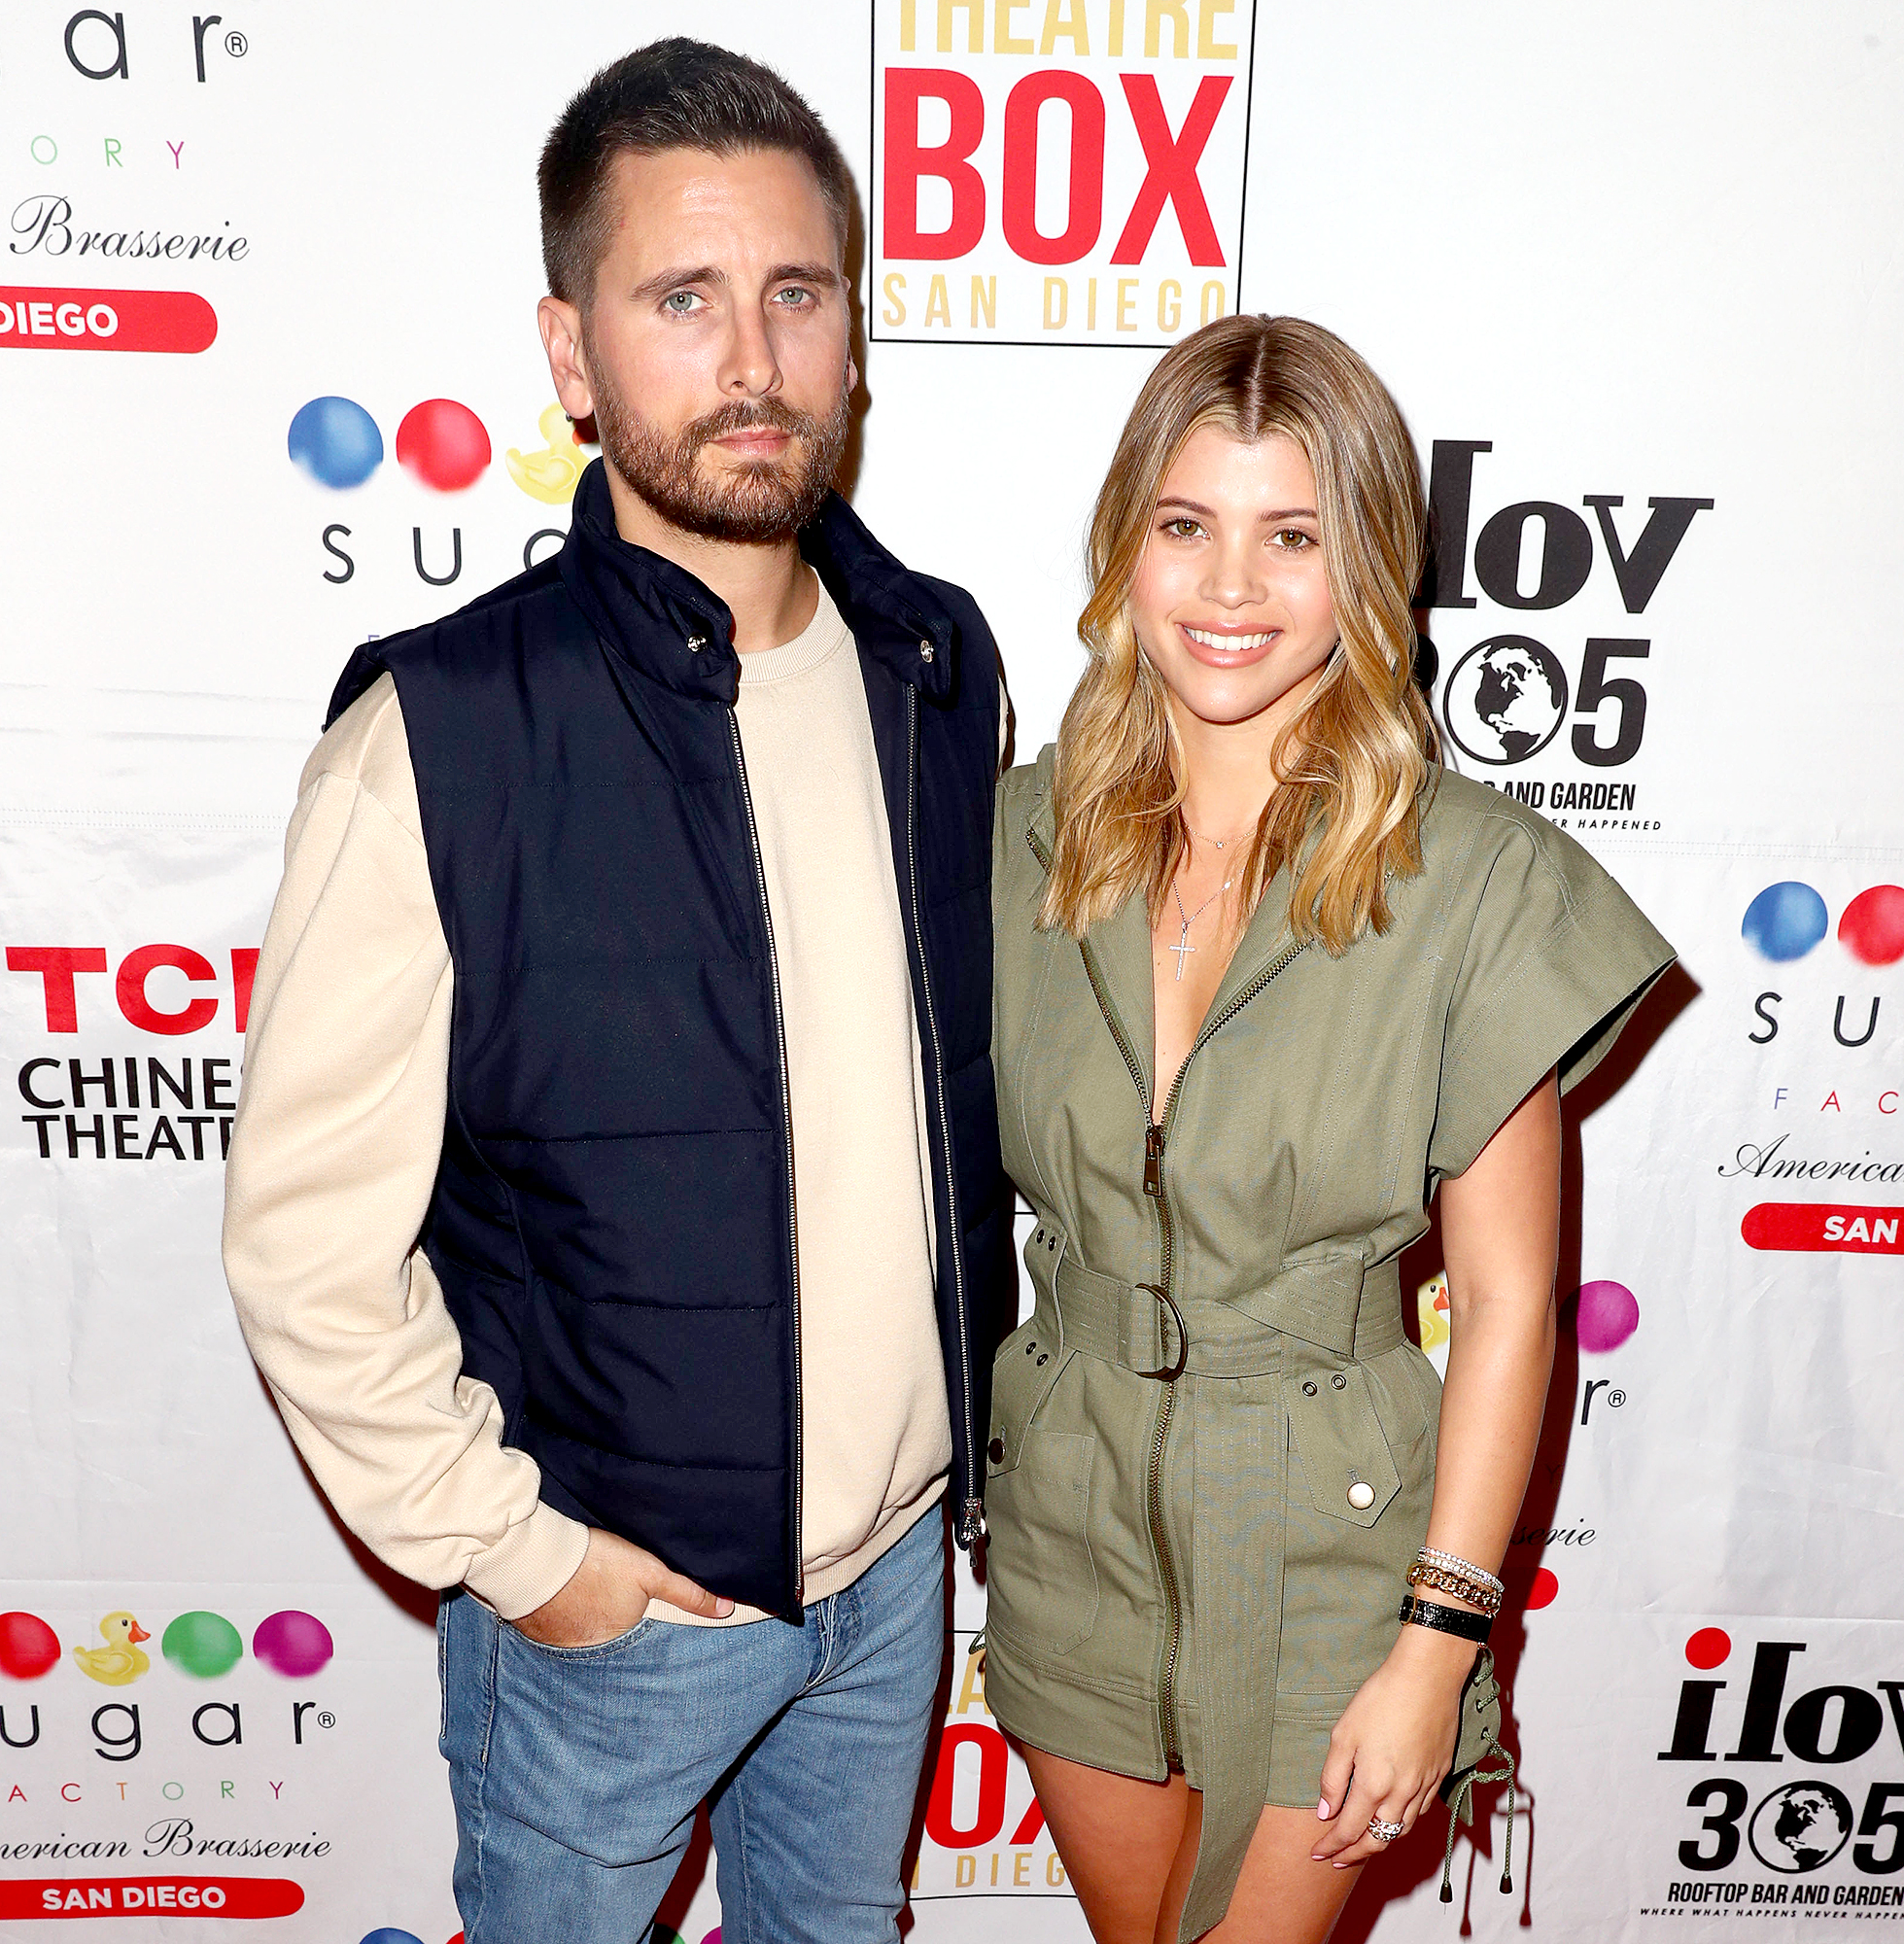 Scott-Disick-and-Sofia-Richie-engaged-soon